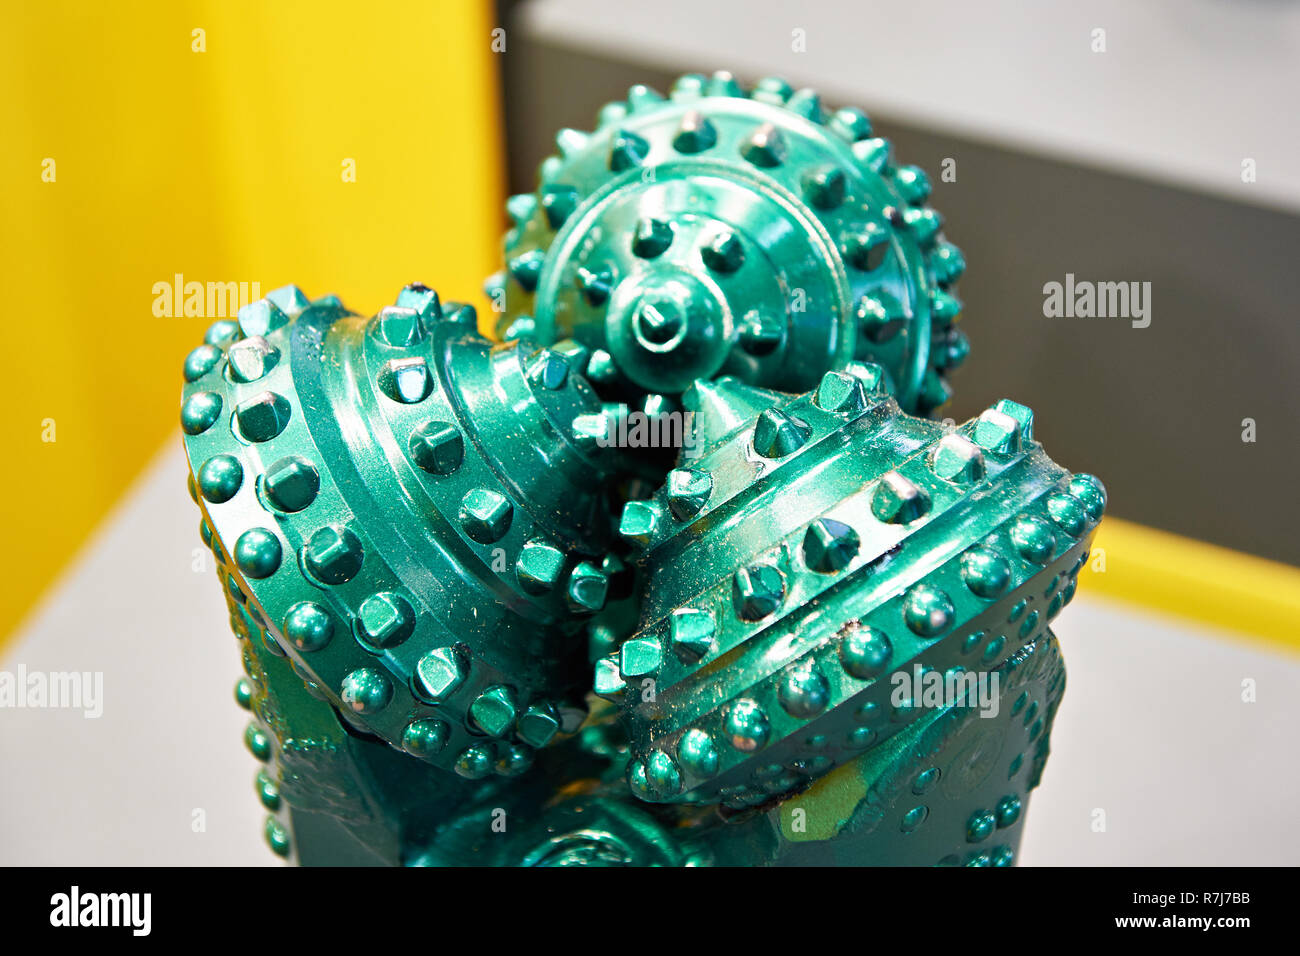 Green drilling head for oil production at the exhibition - Stock Image